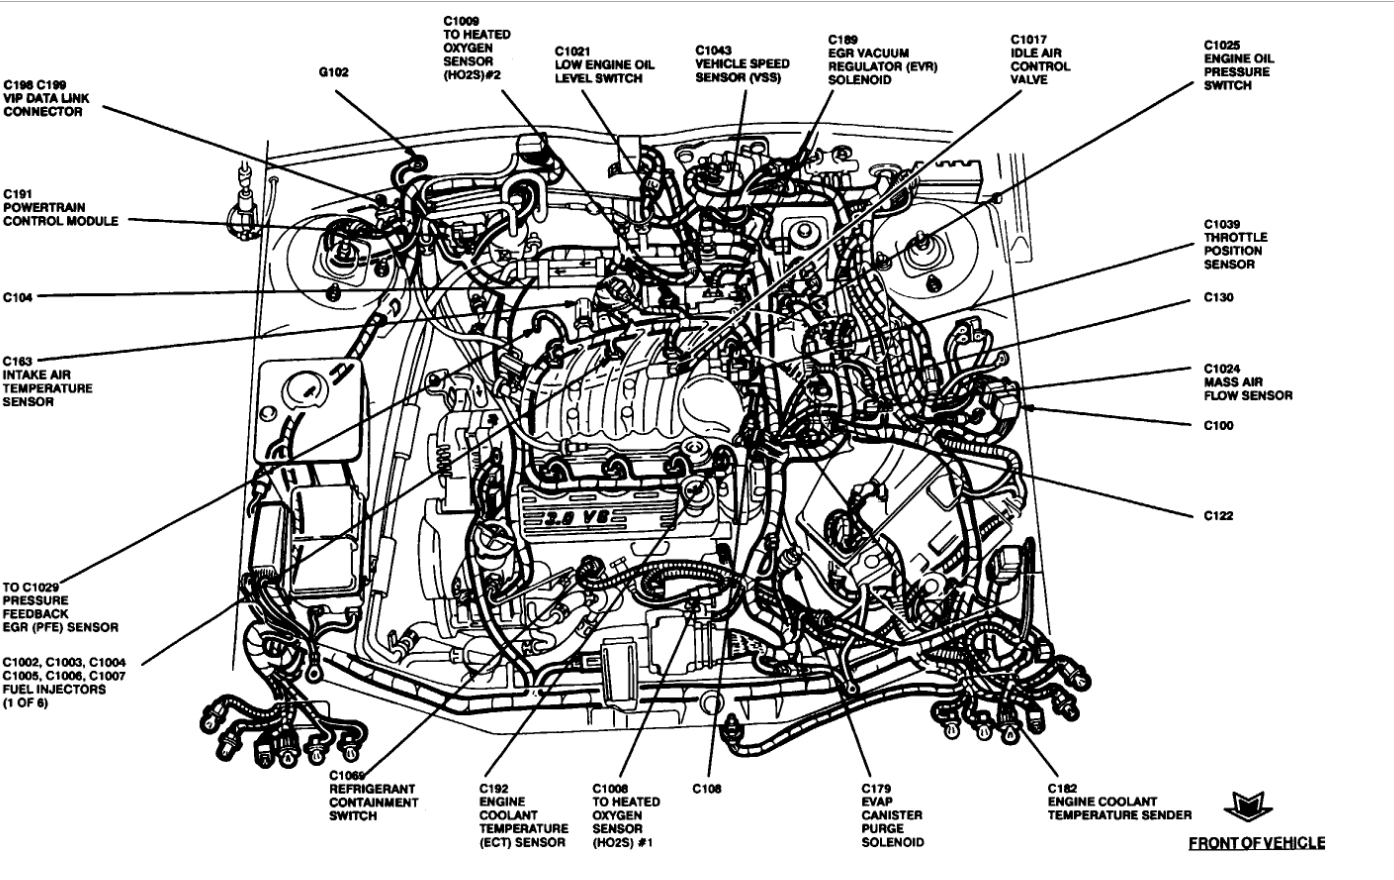 2001 ford taurus engine diagram 2002 f150 horn wiring coolant sensor location please where is the thumb